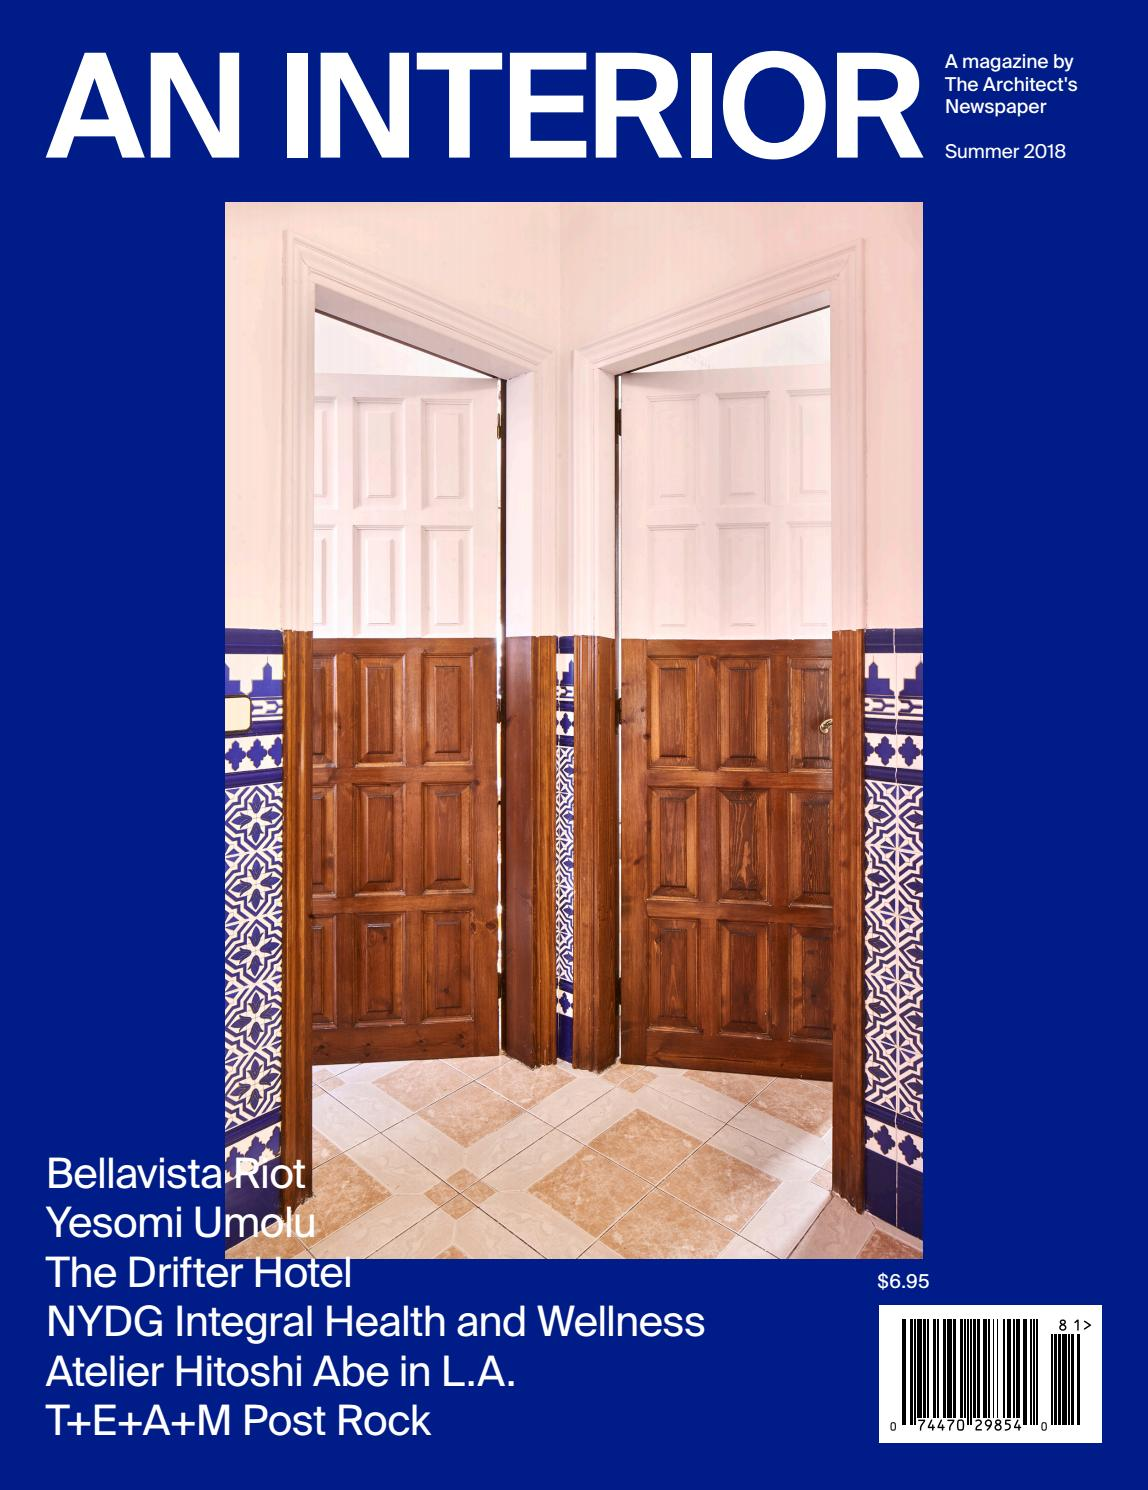 AN Interior 10 (Summer 2018) by The Architect's Newspaper - issuu